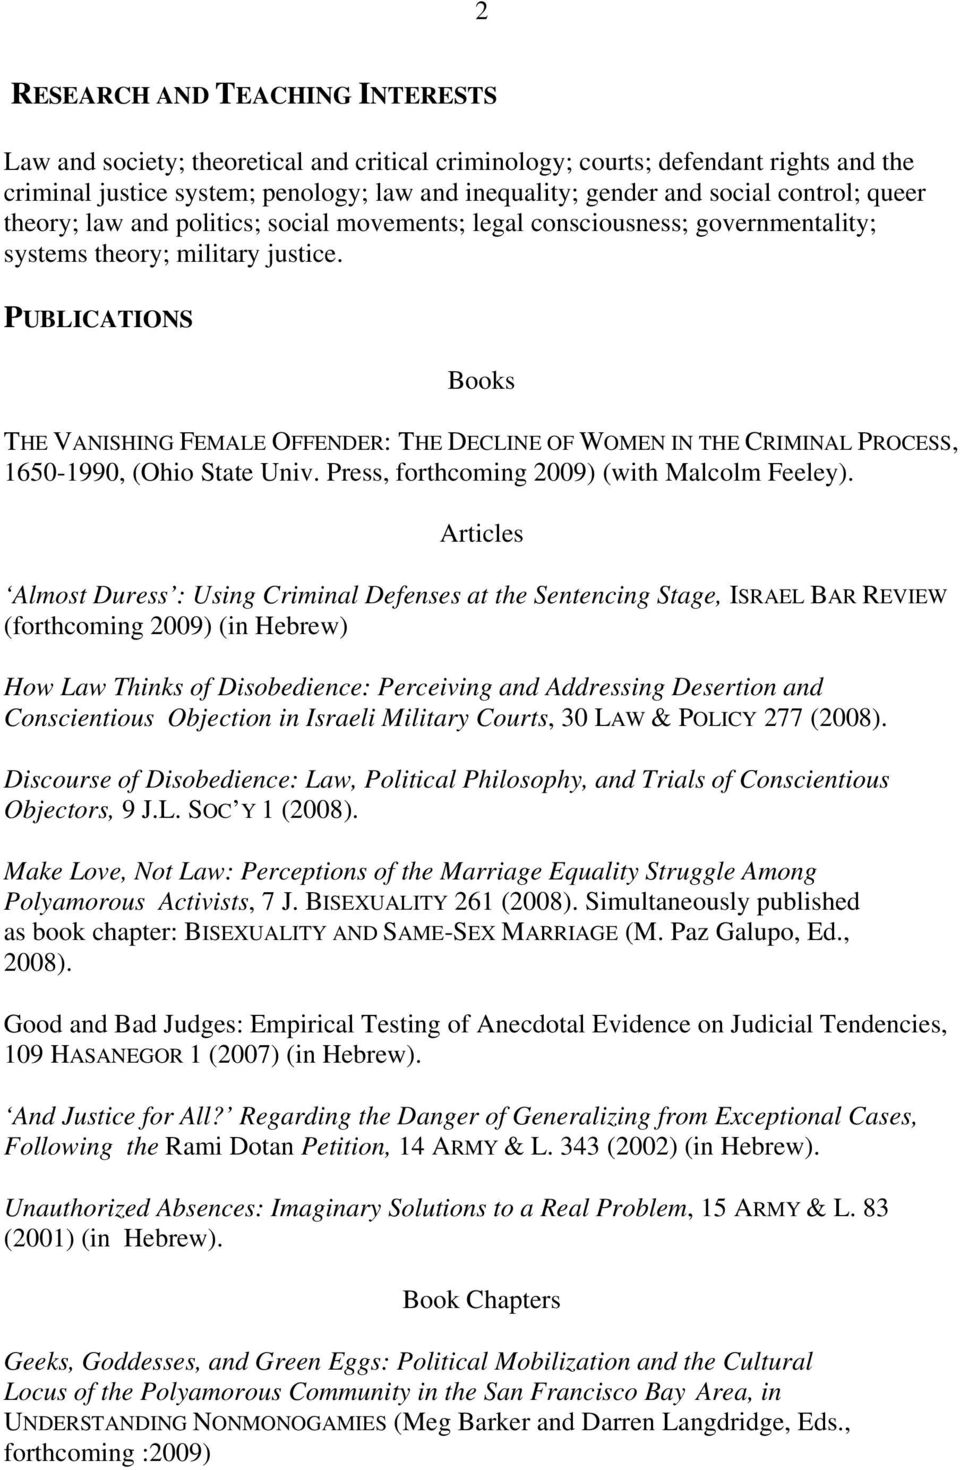 PUBLICATIONS Books THE VANISHING FEMALE OFFENDER: THE DECLINE OF WOMEN IN THE CRIMINAL PROCESS, 1650-1990, (Ohio State Univ. Press, forthcoming 2009) (with Malcolm Feeley).